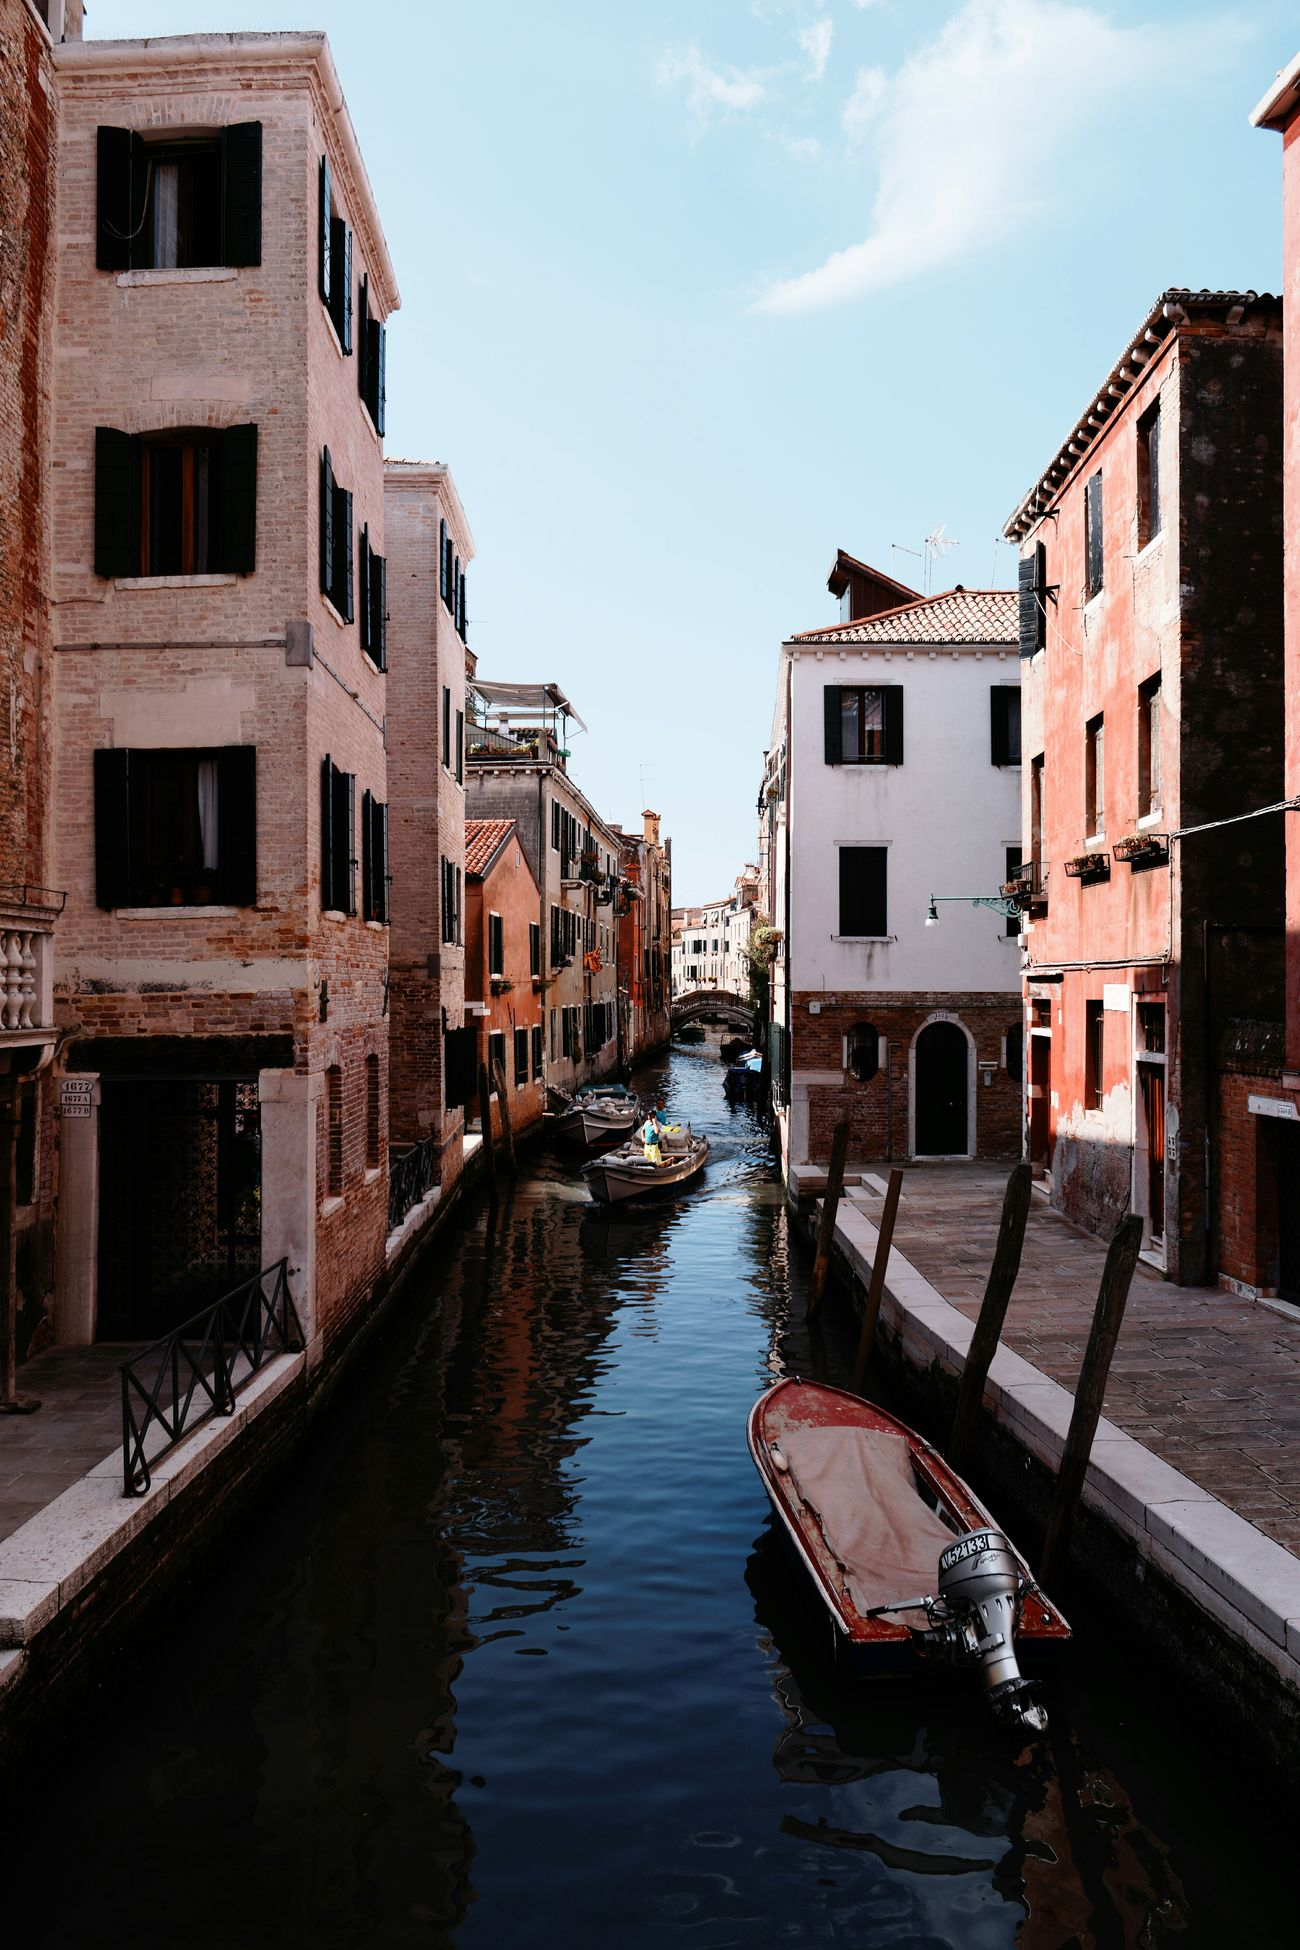 Venice.. city of canals Italy Water Canal Reflection Building Exterior Outdoors Architecture Flood Gondola - Traditional Boat Sea Life VSCO Vscophile Adventure Photography Photo All_shots Vscocam VSCOPH Kodak The Street Photographer - 2017 EyeEm Awards